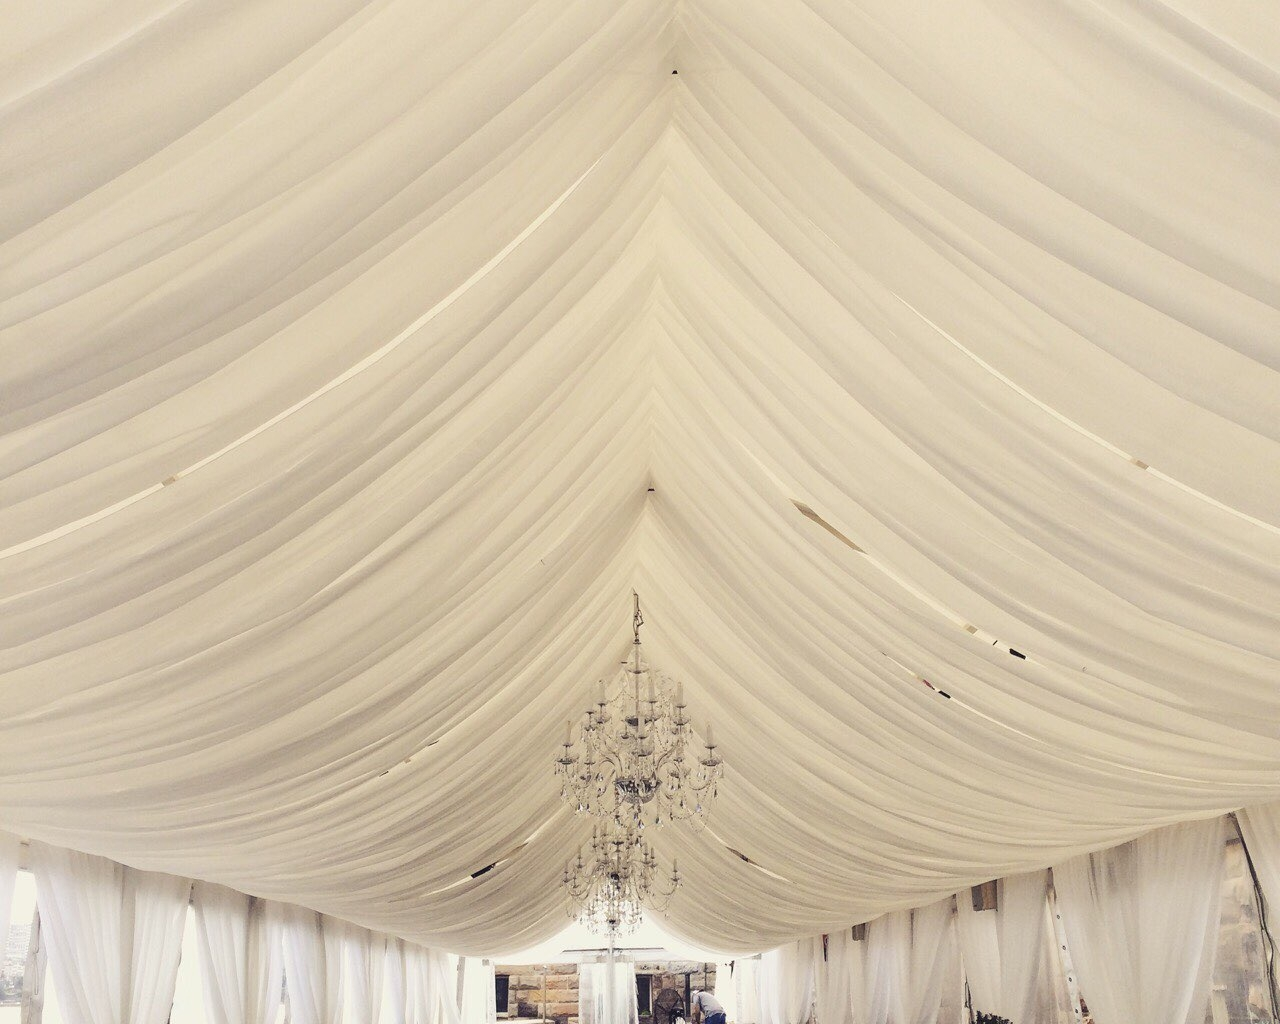 backdrops & draping